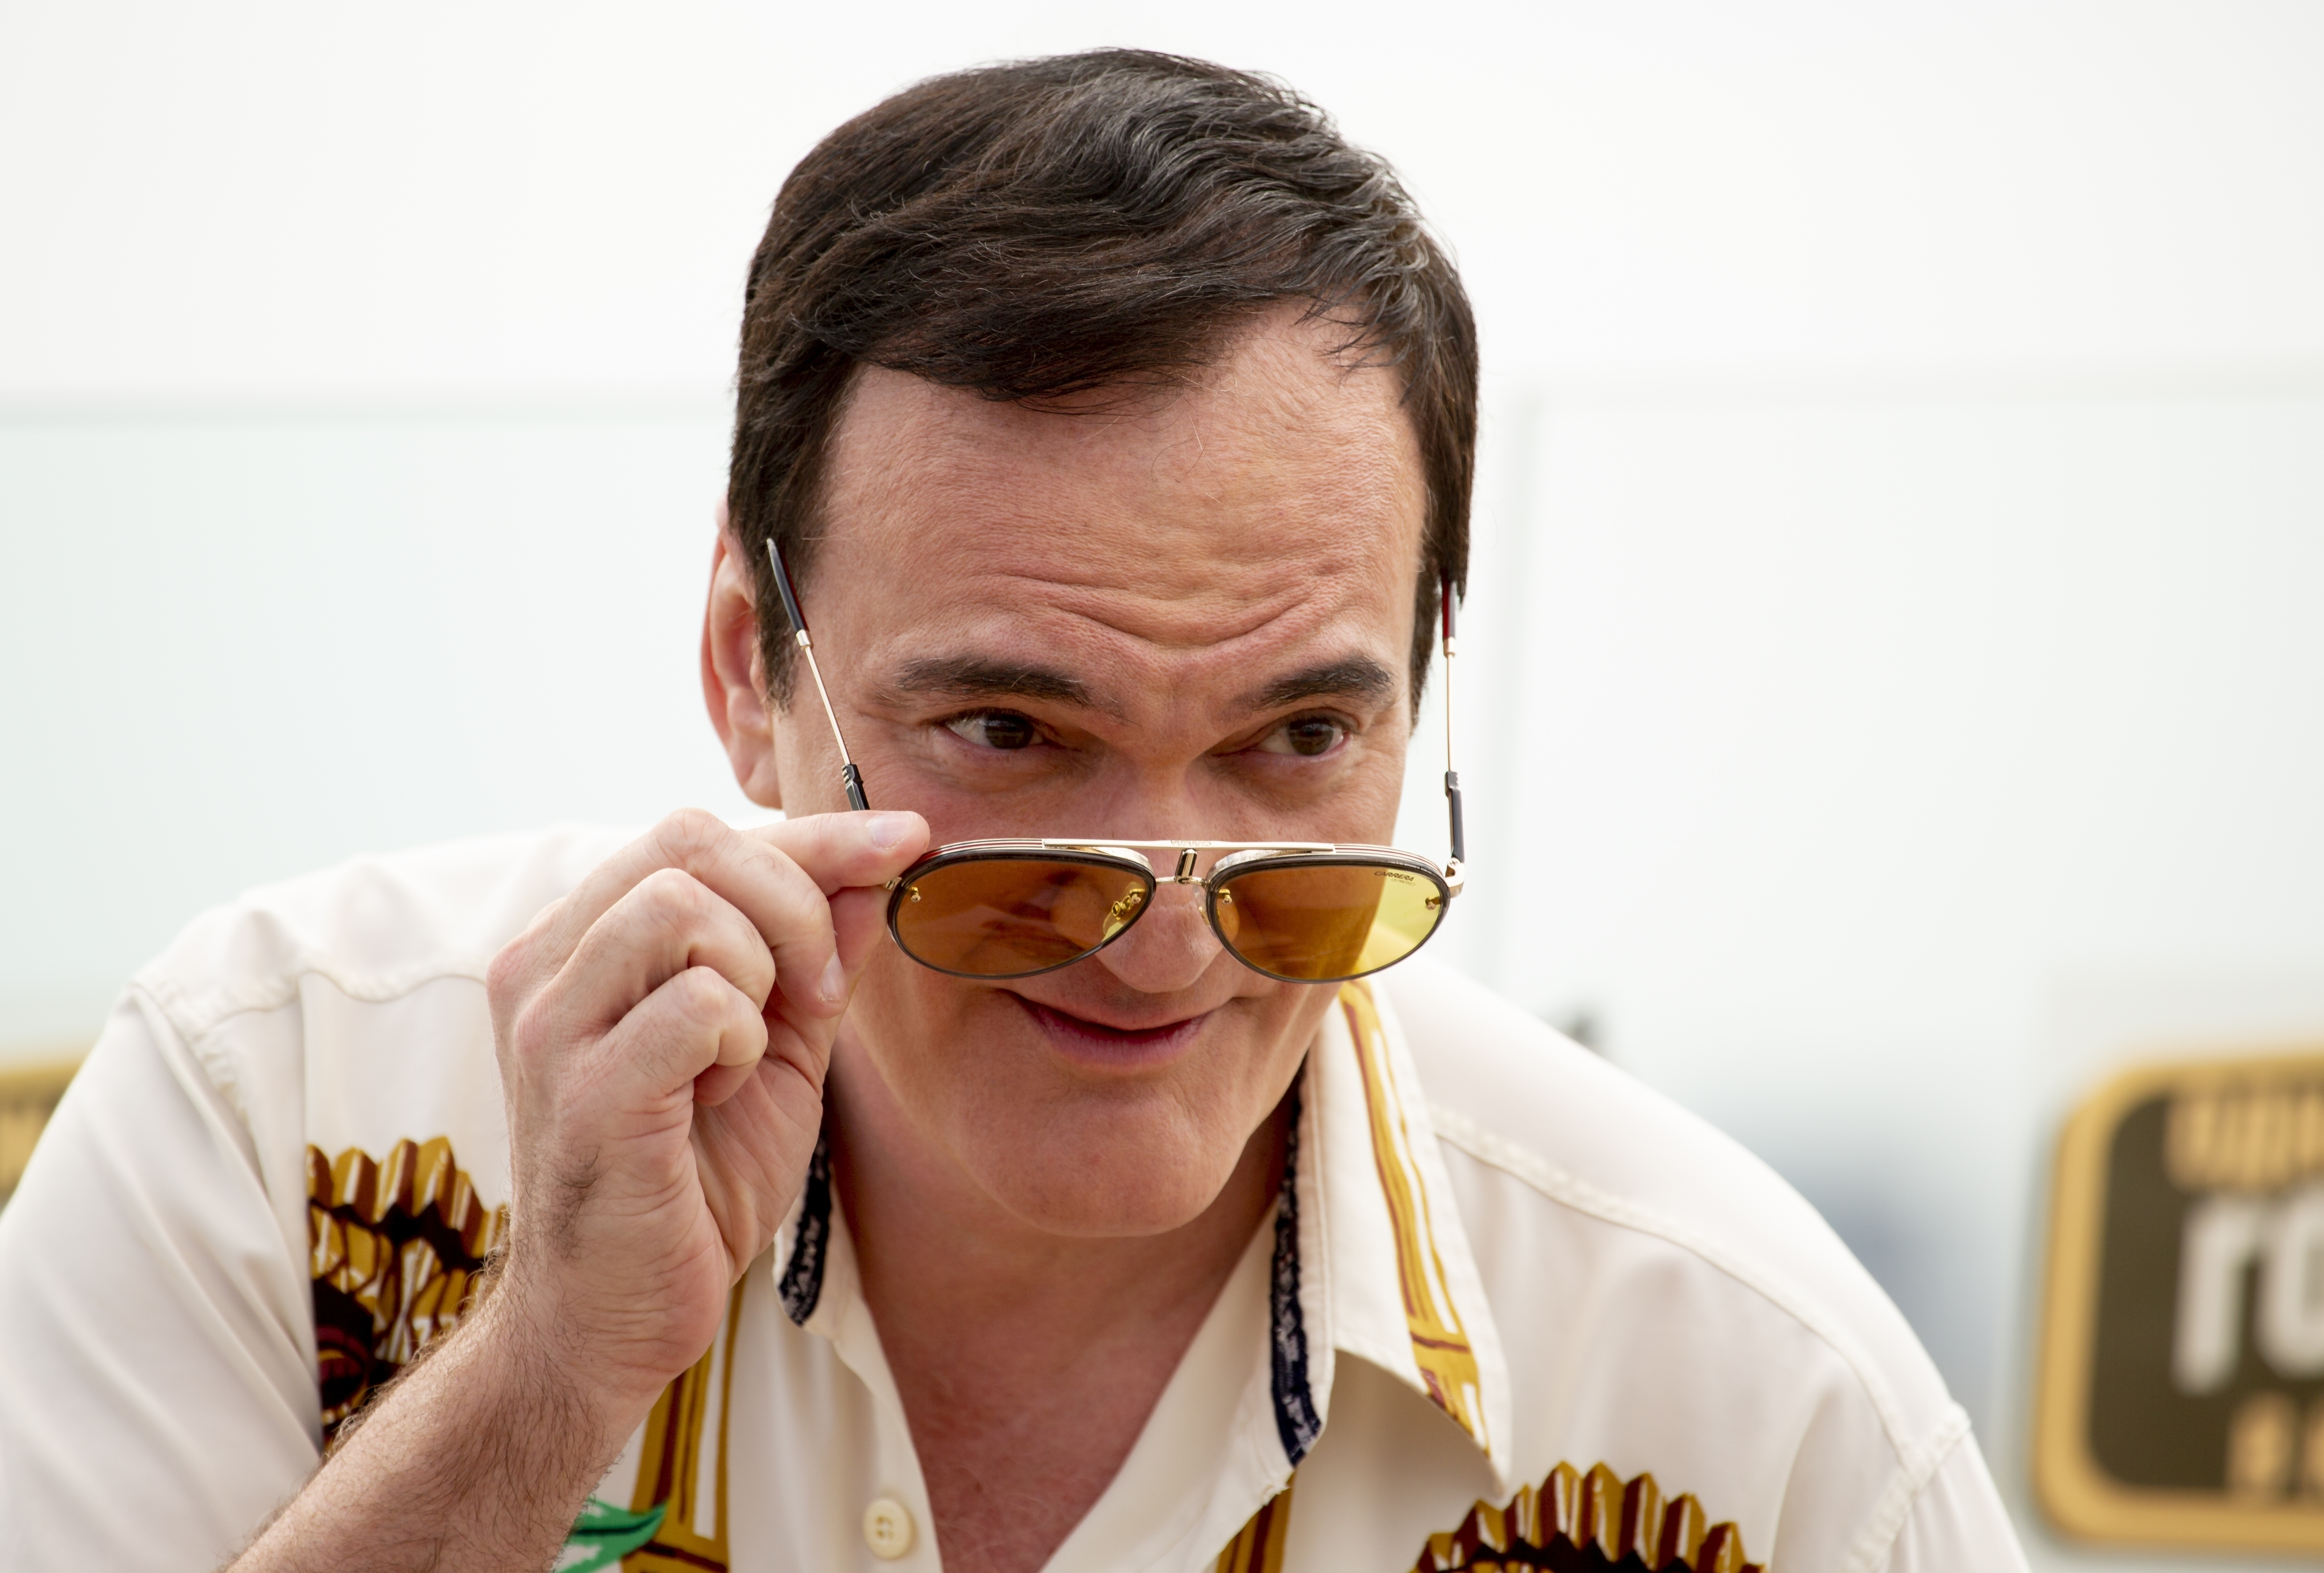 American writer and film director Quentin Tarantino pose for photographers prior to the premiere of the movie 'Once Upon A Time in Hollywood' in Moscow, Russia, Wednesday, Aug. 7, 2019. (AP Photo/Alexander Zemlianichenko)